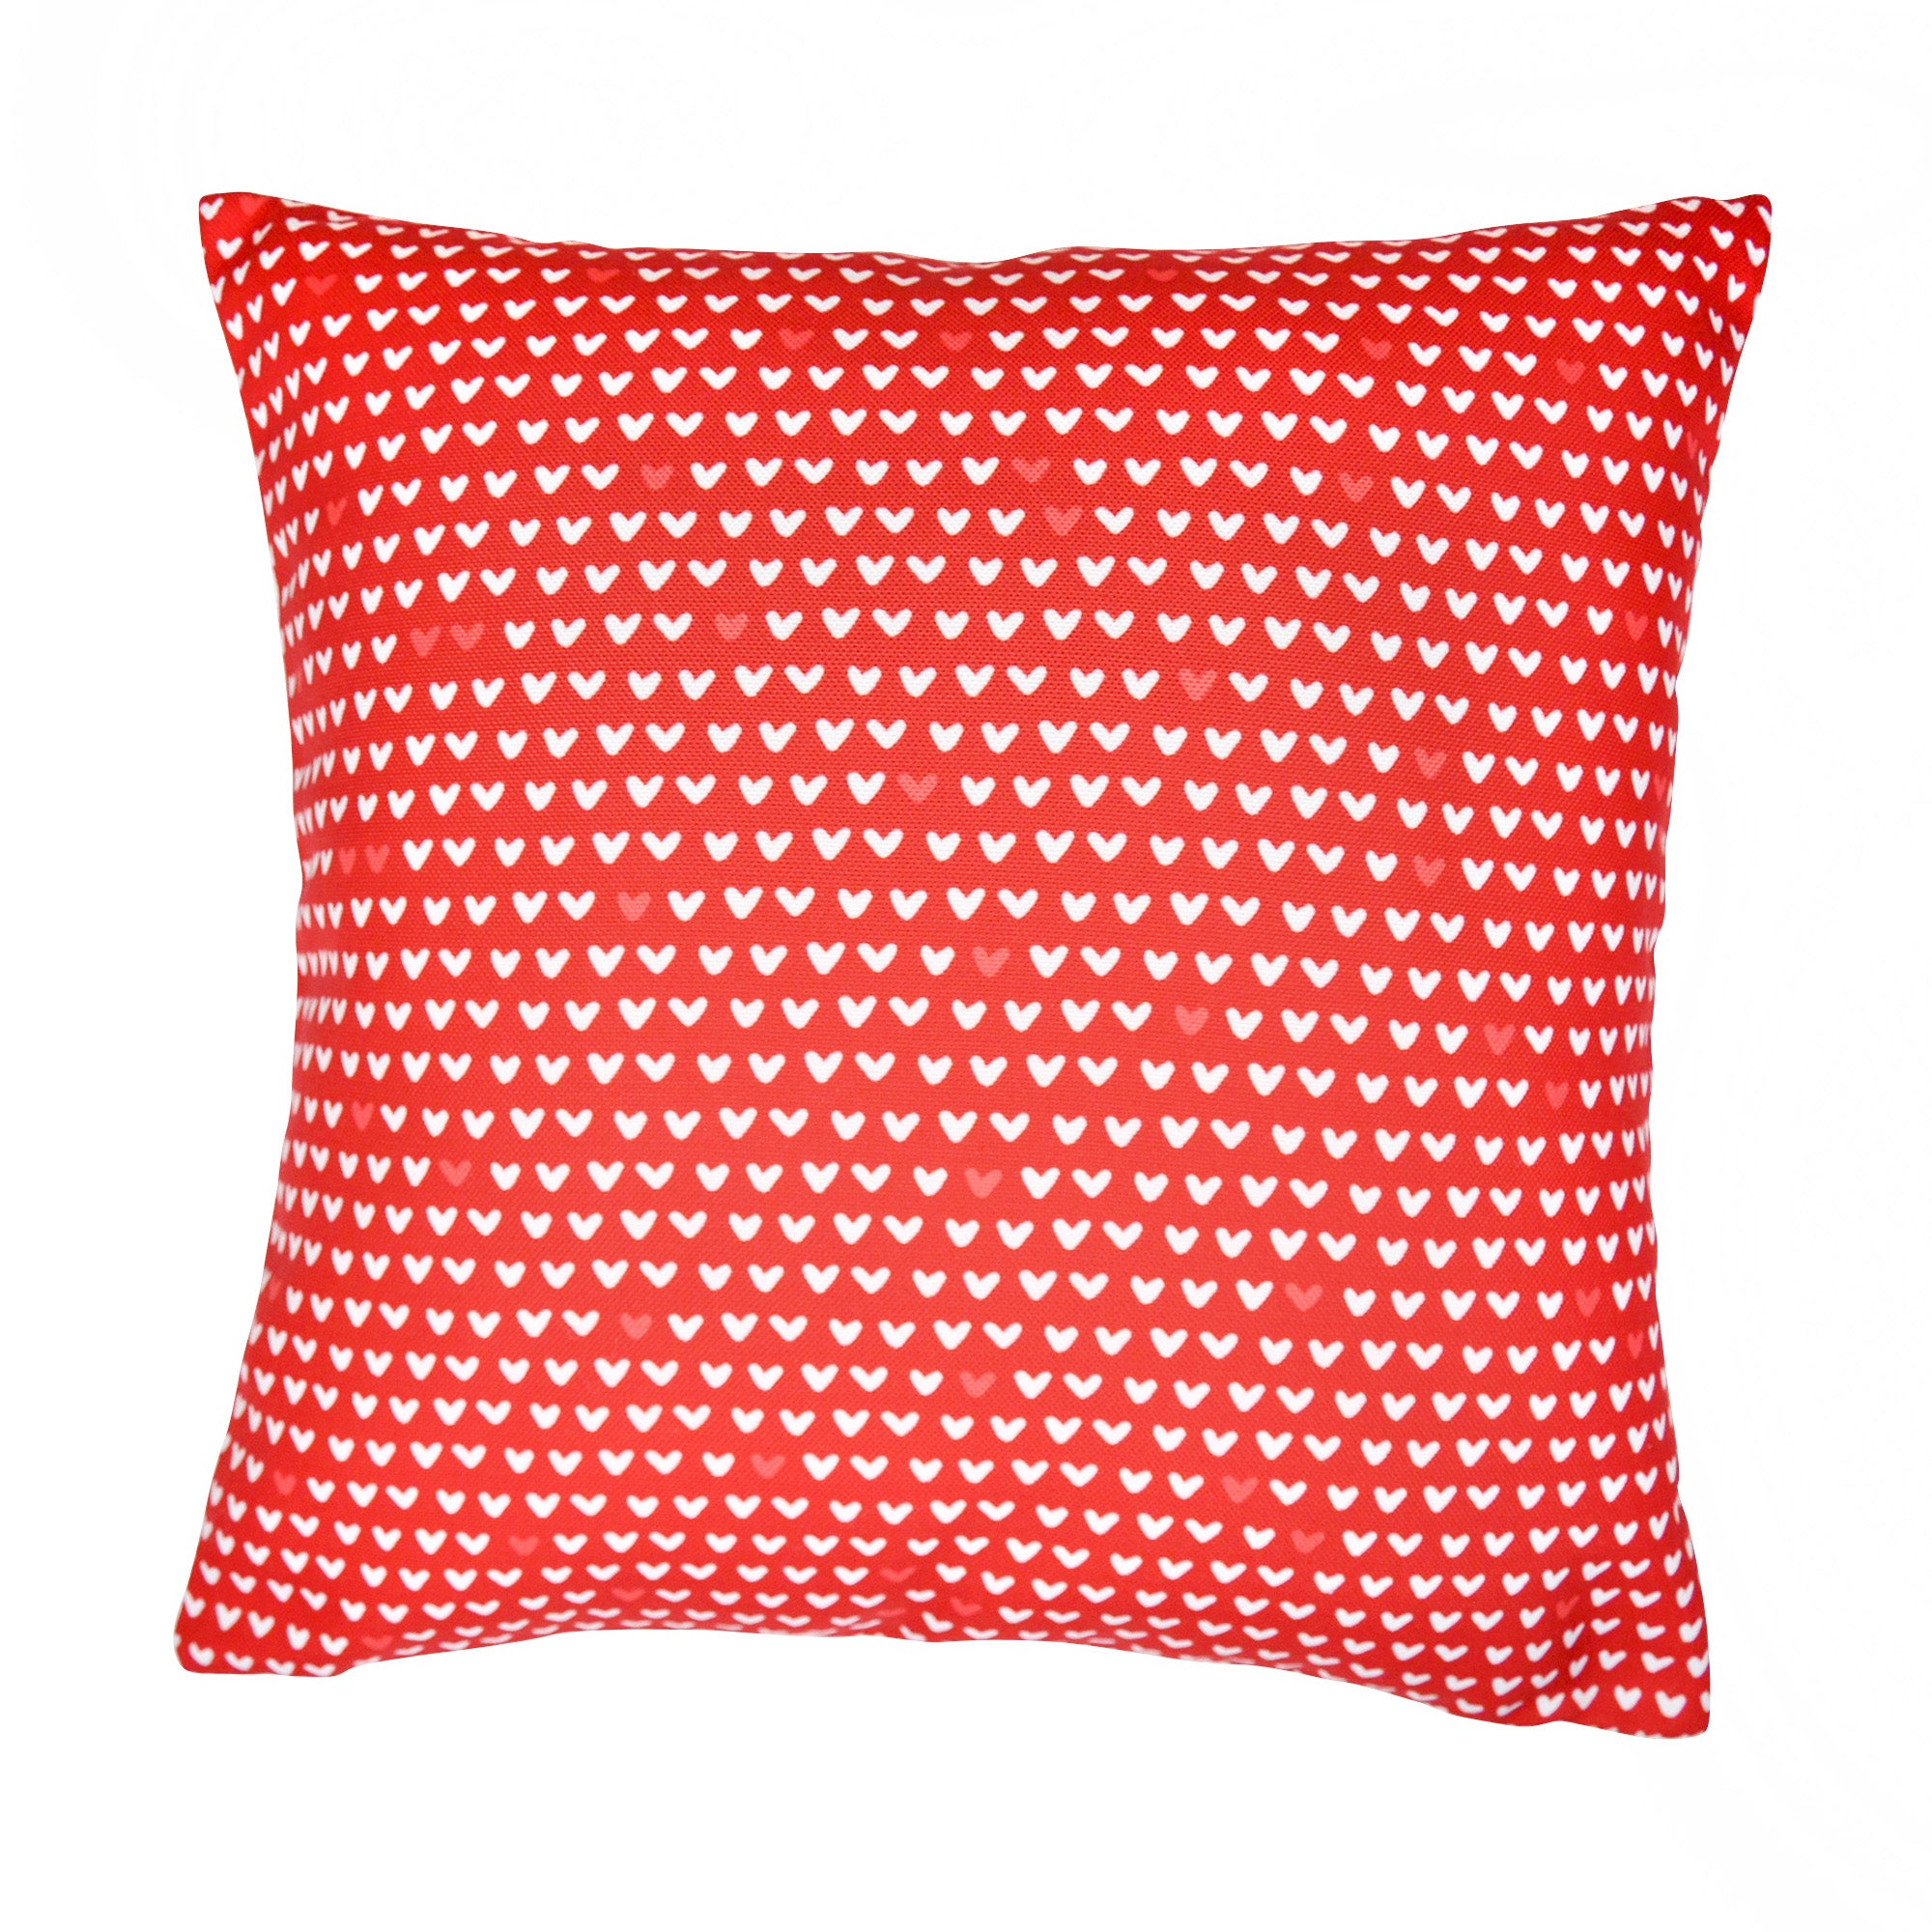 Printed Hearts Cushion